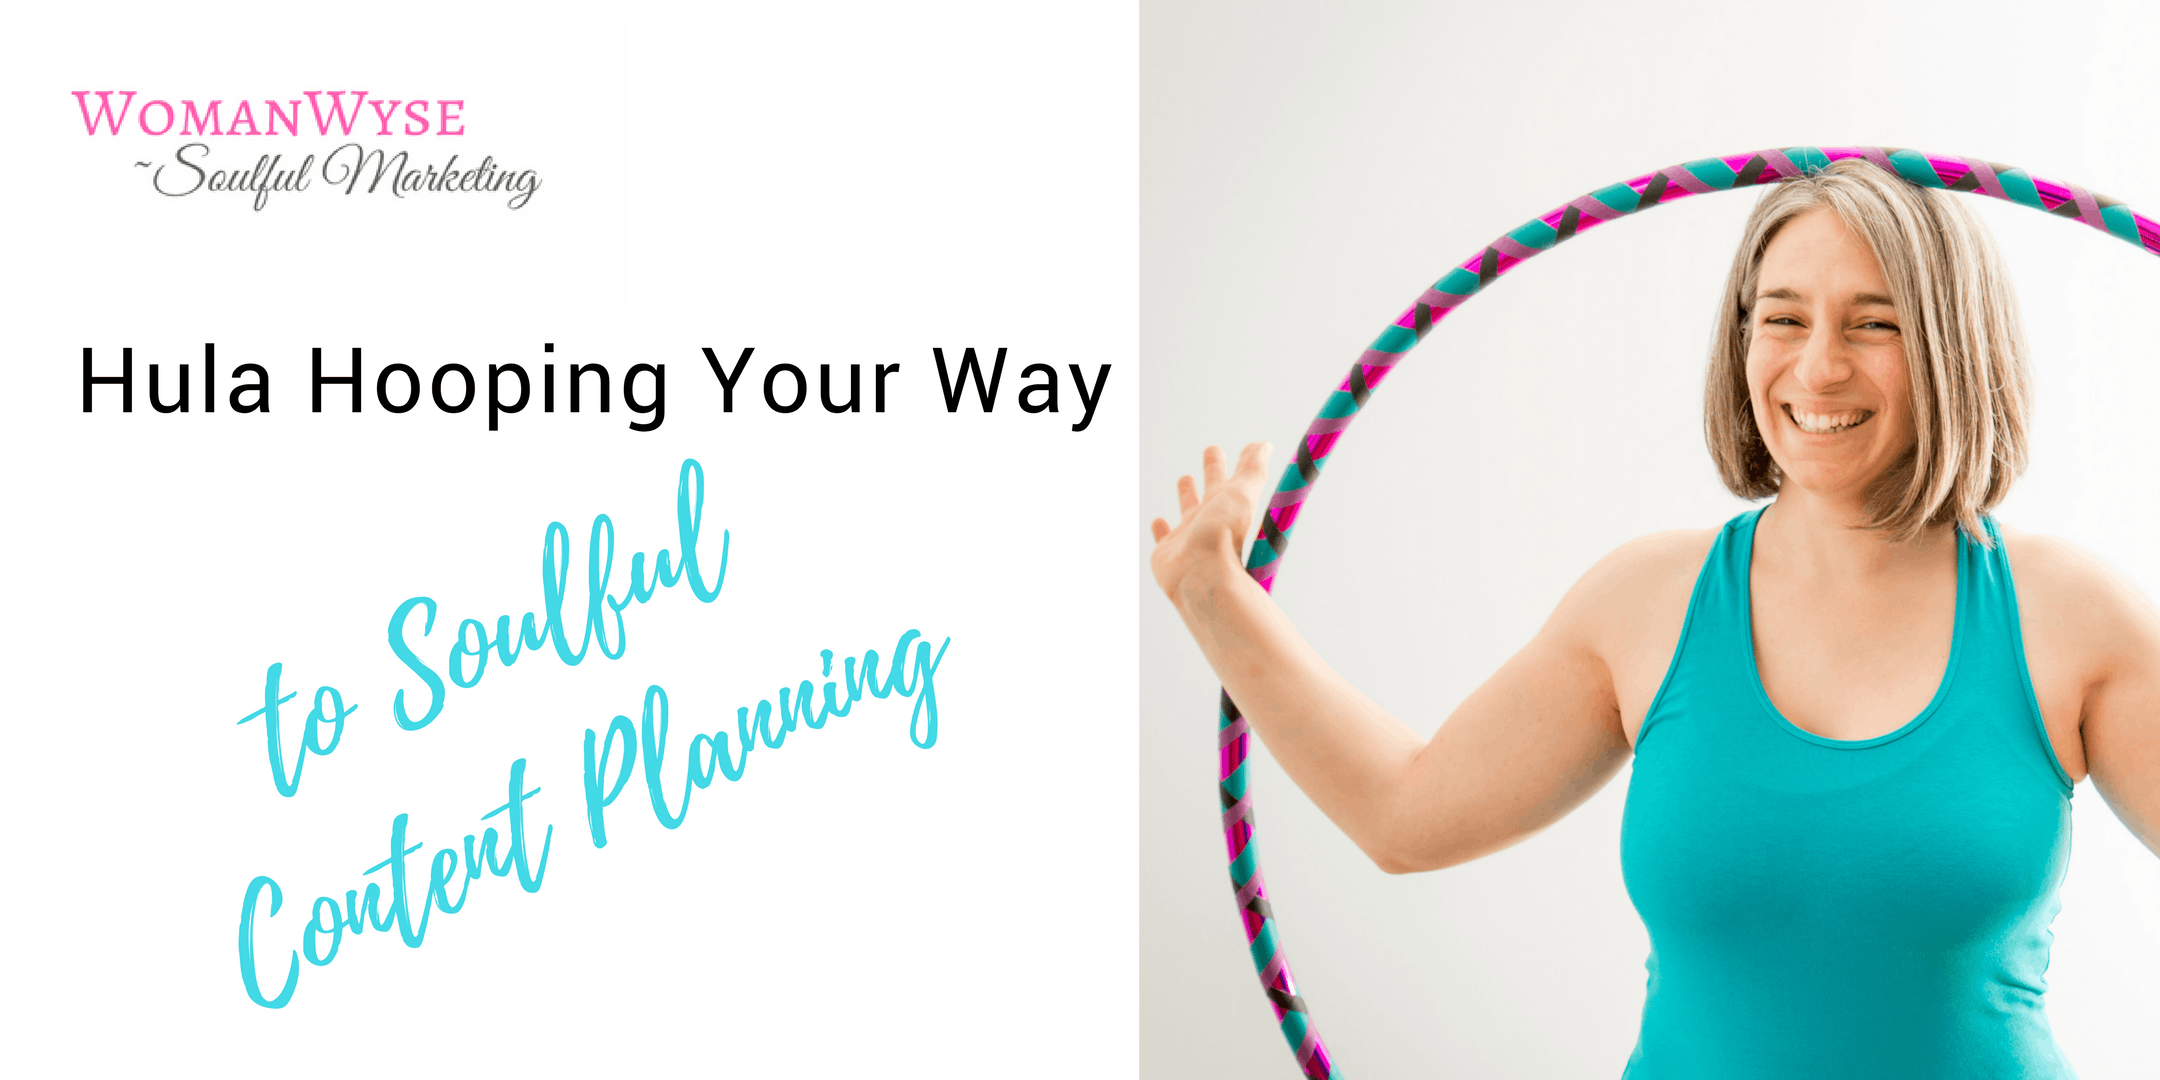 Hula Hooping Your Way to Soulful Content Plan